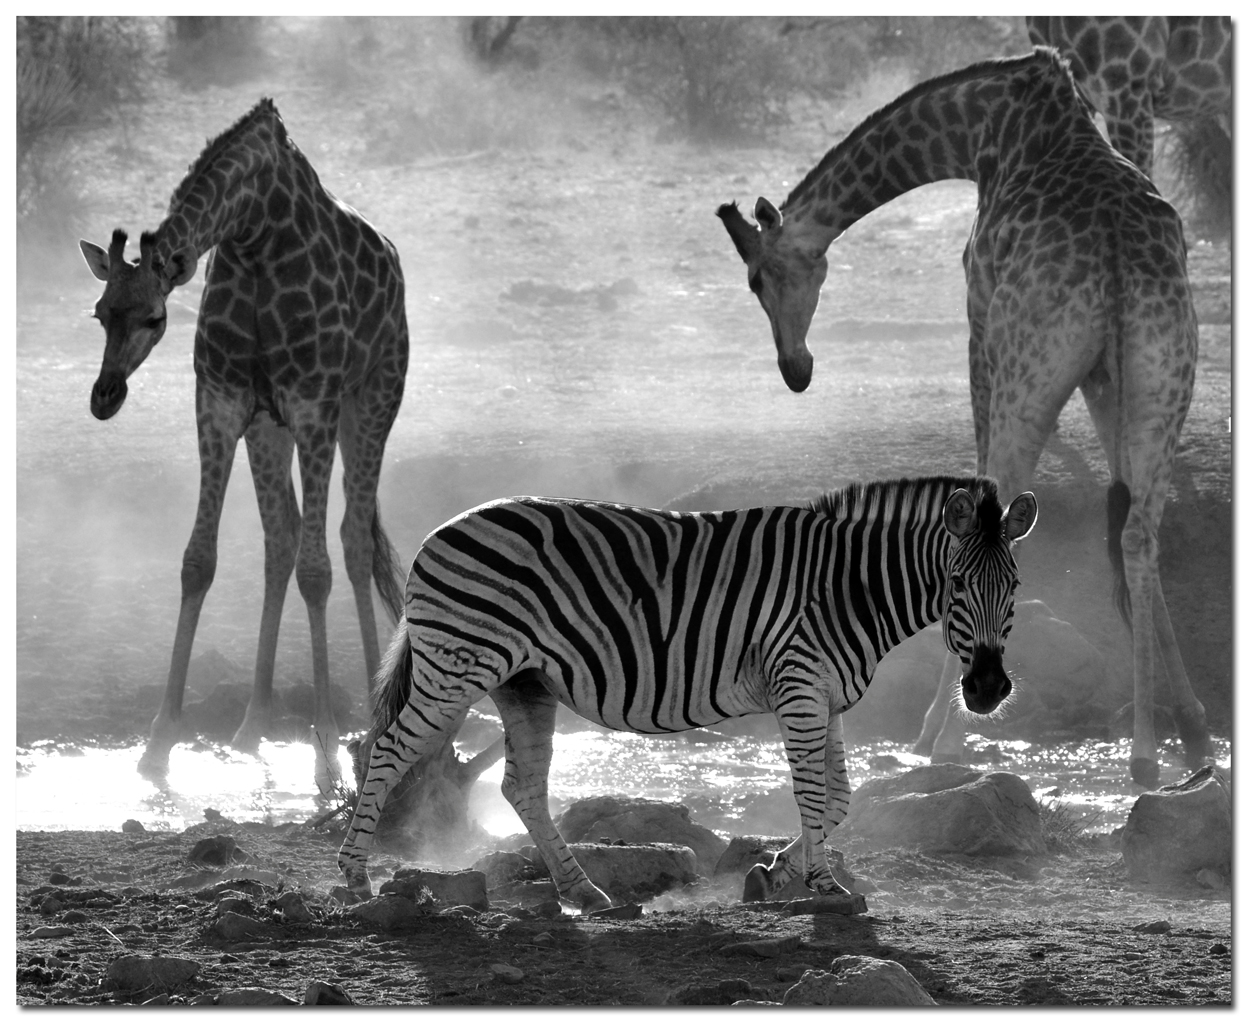 WATERHOLE by Alex Kellas